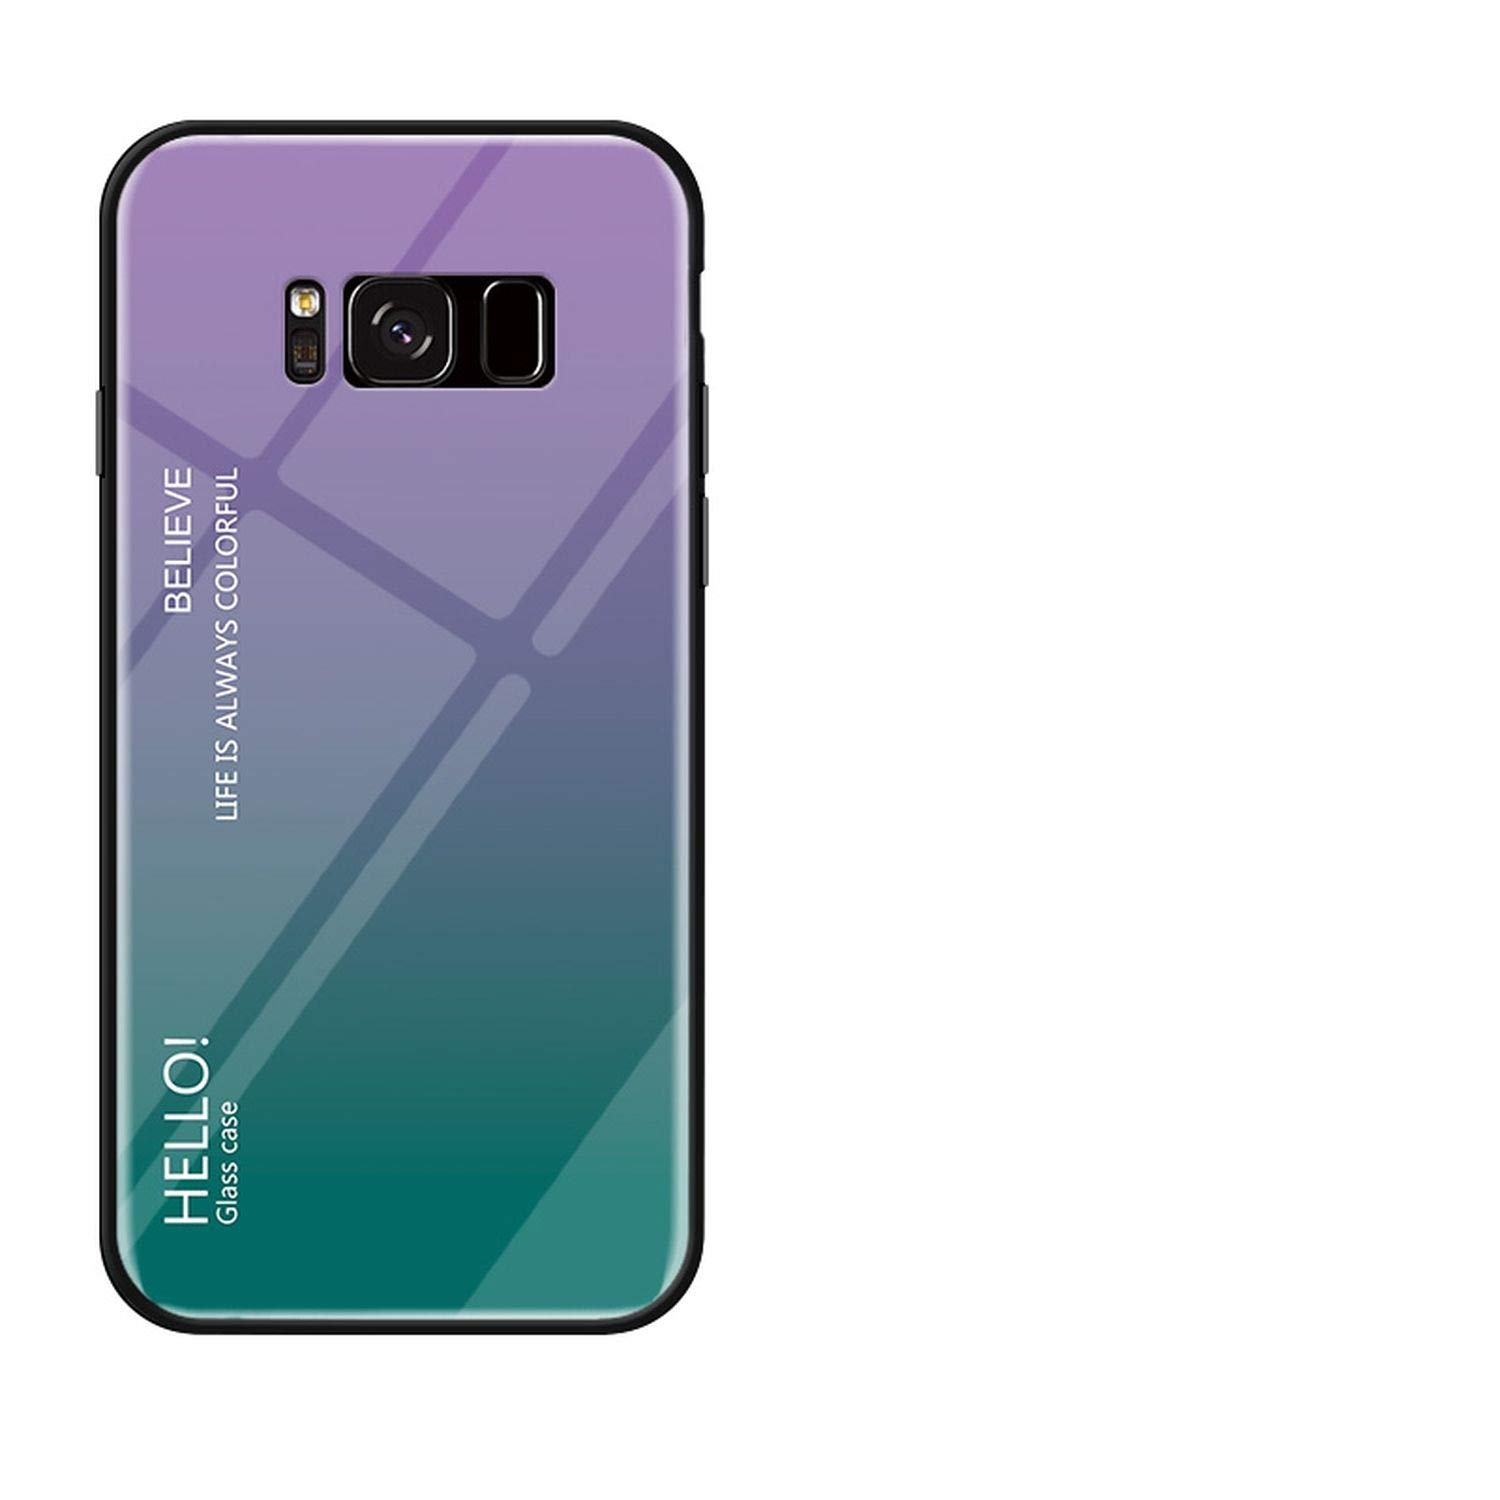 Amazon.com: Case for Samsung Galaxy S8 Case S9 Plus S7 Edge ...